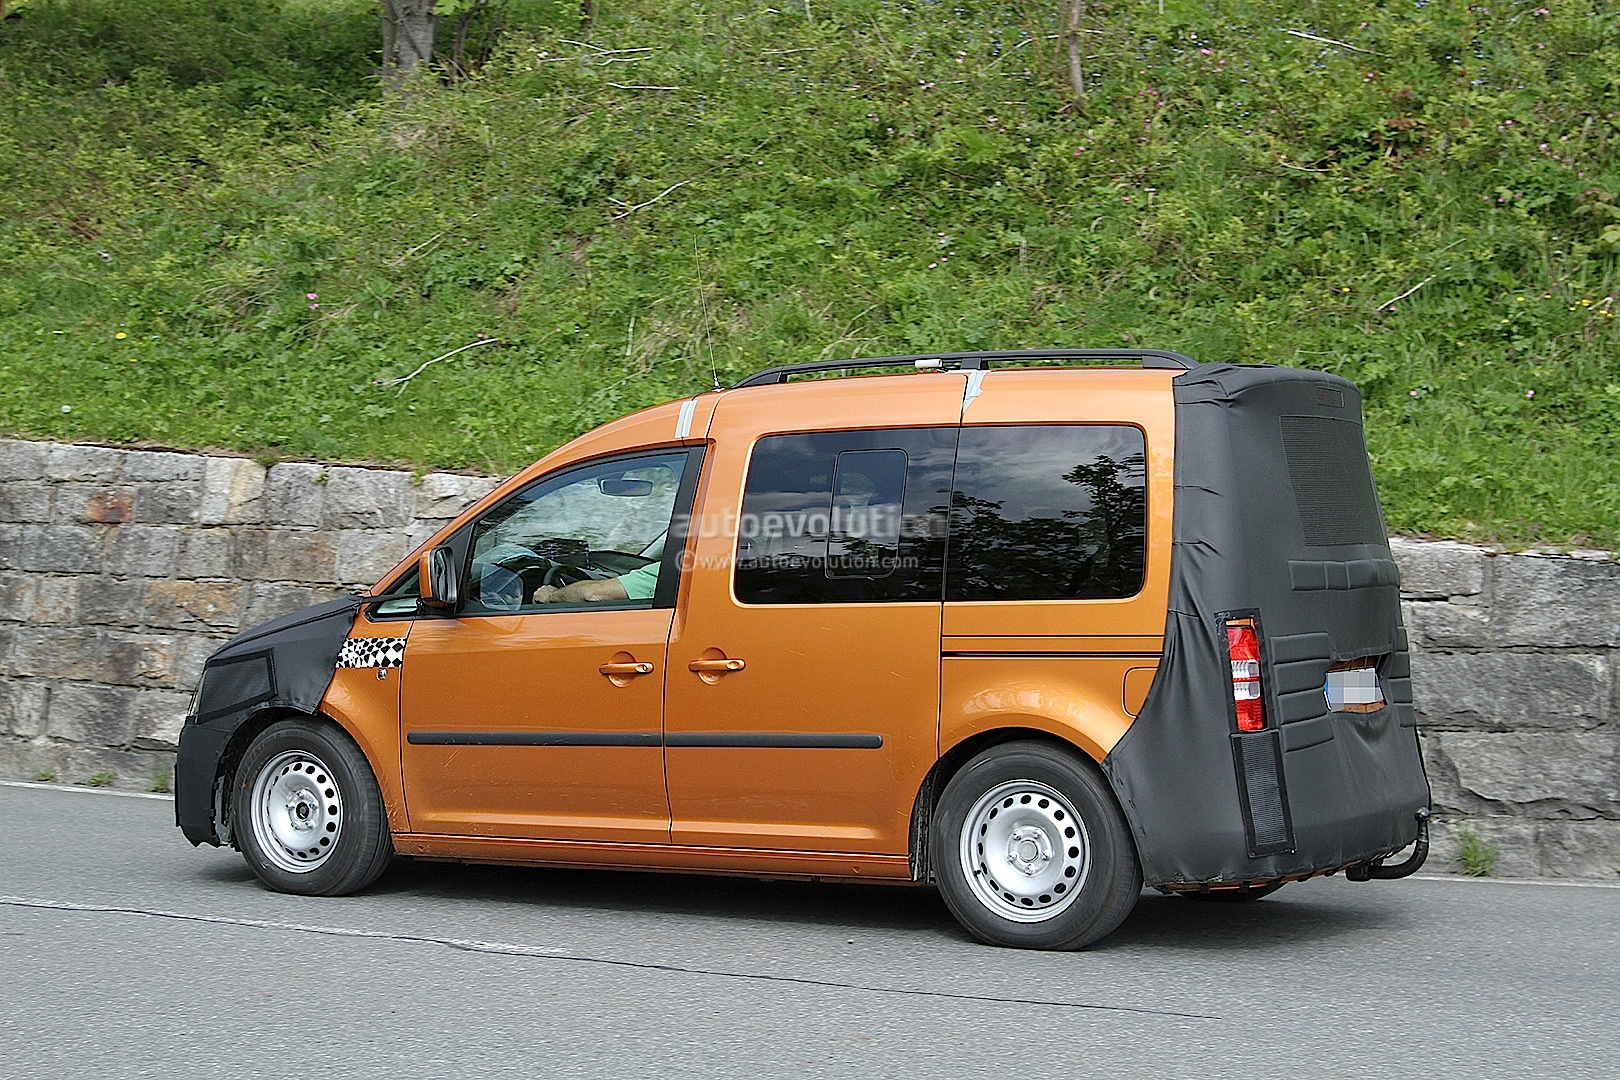 new volkswagen caddy spied testing for 2015 launch autoevolution. Black Bedroom Furniture Sets. Home Design Ideas